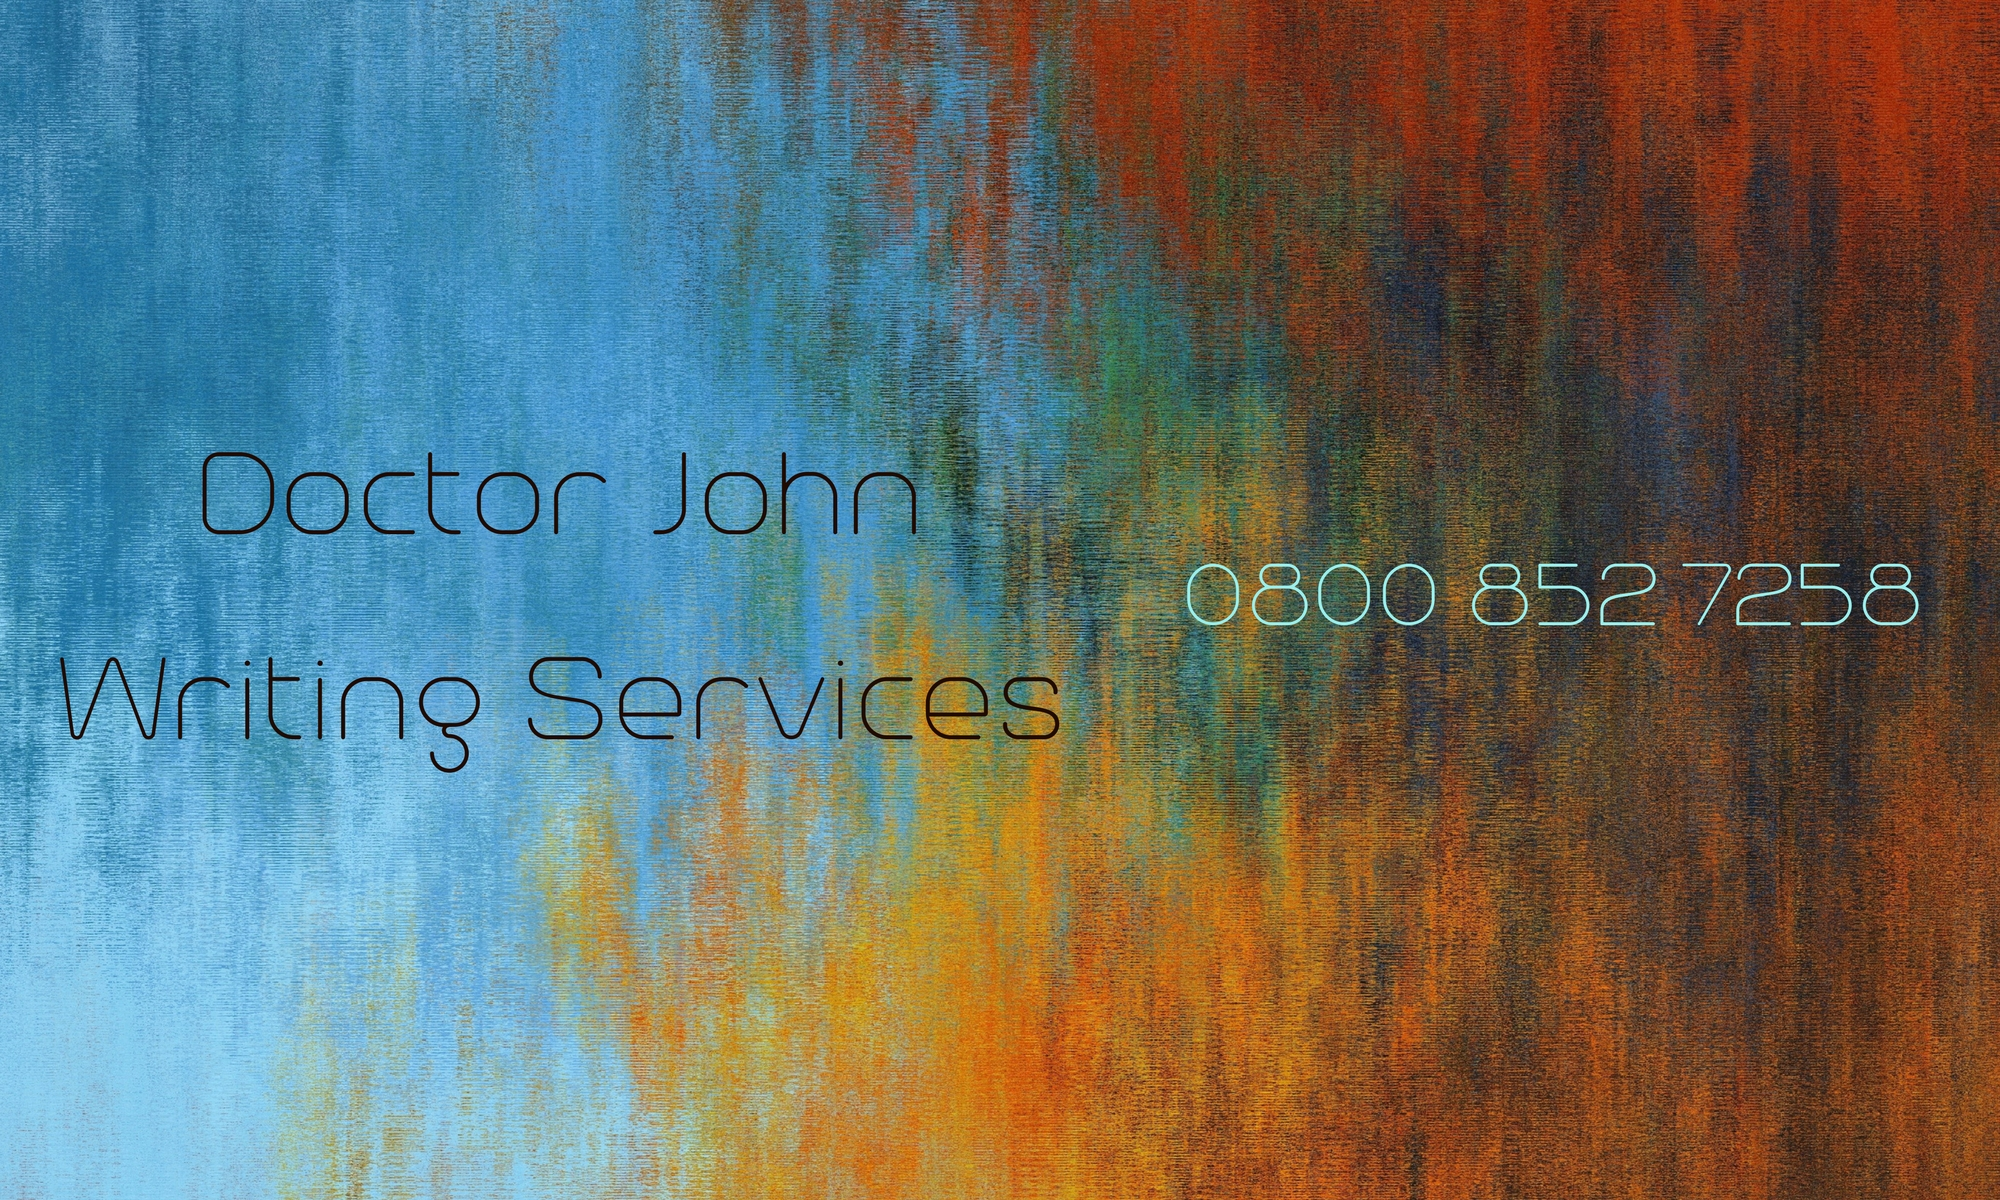 Doctor John Writing Services